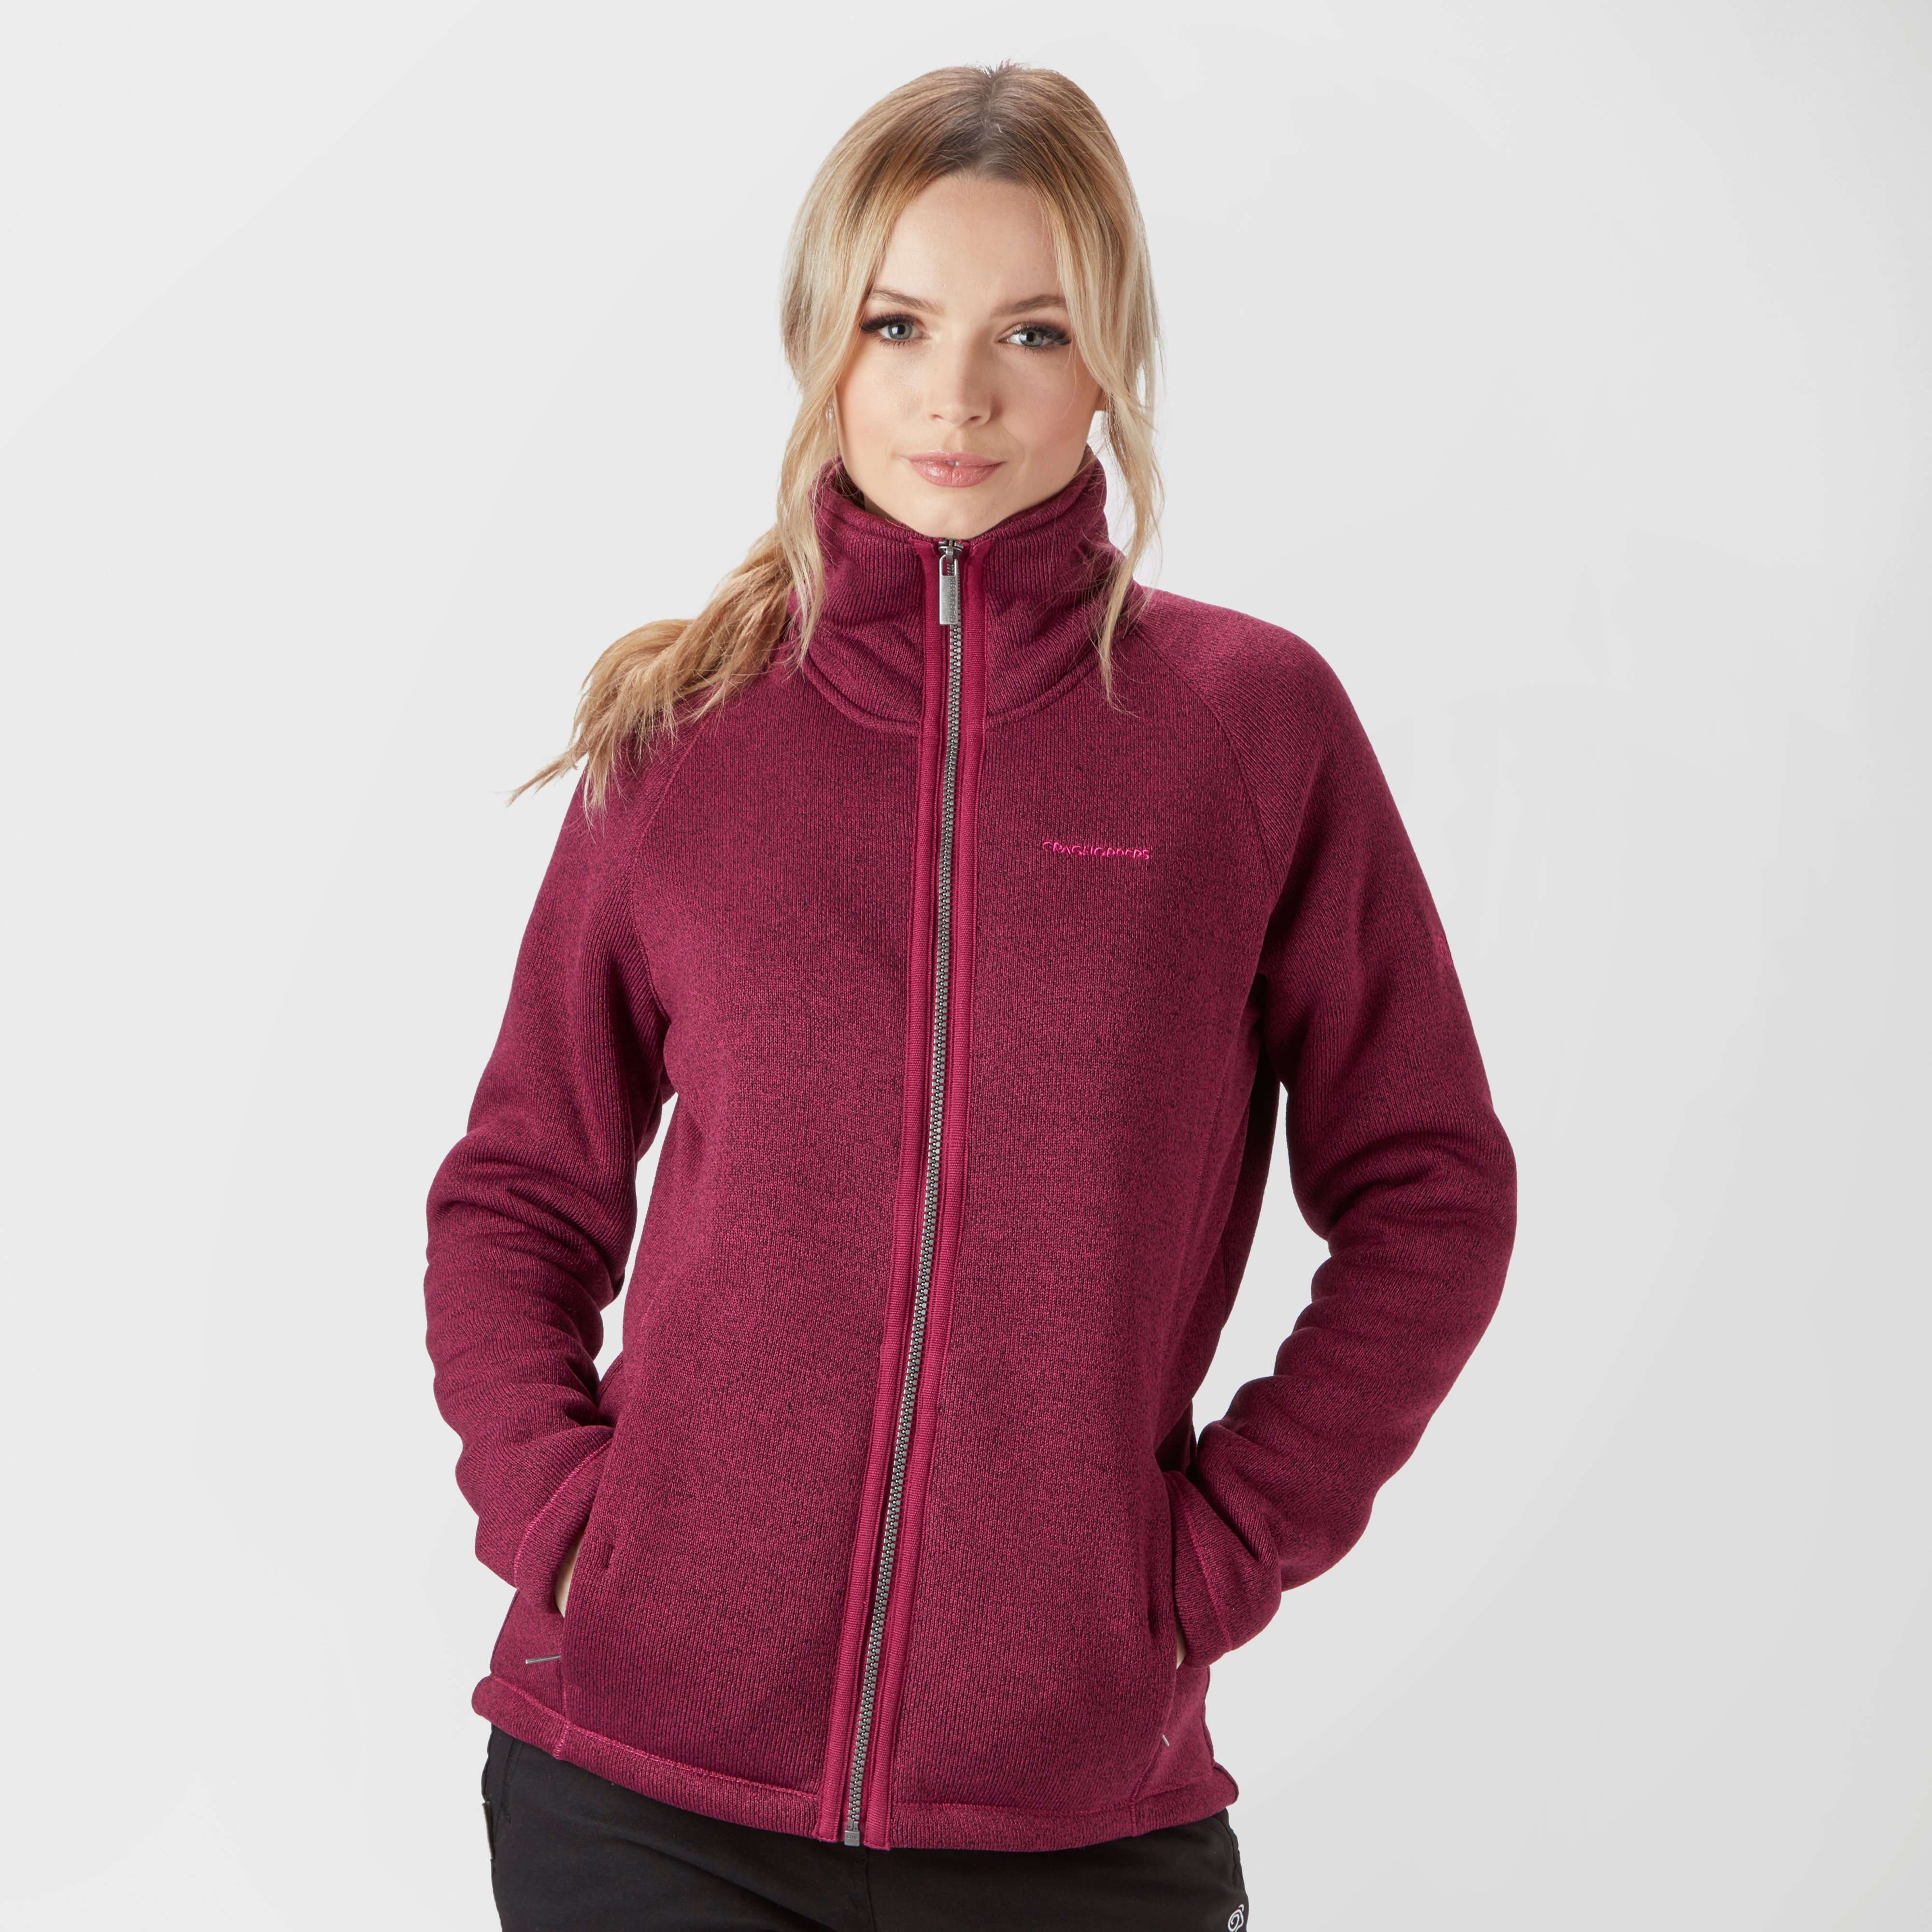 CRAGHOPPERS Women's Mary Borg Full-Zip Fleece